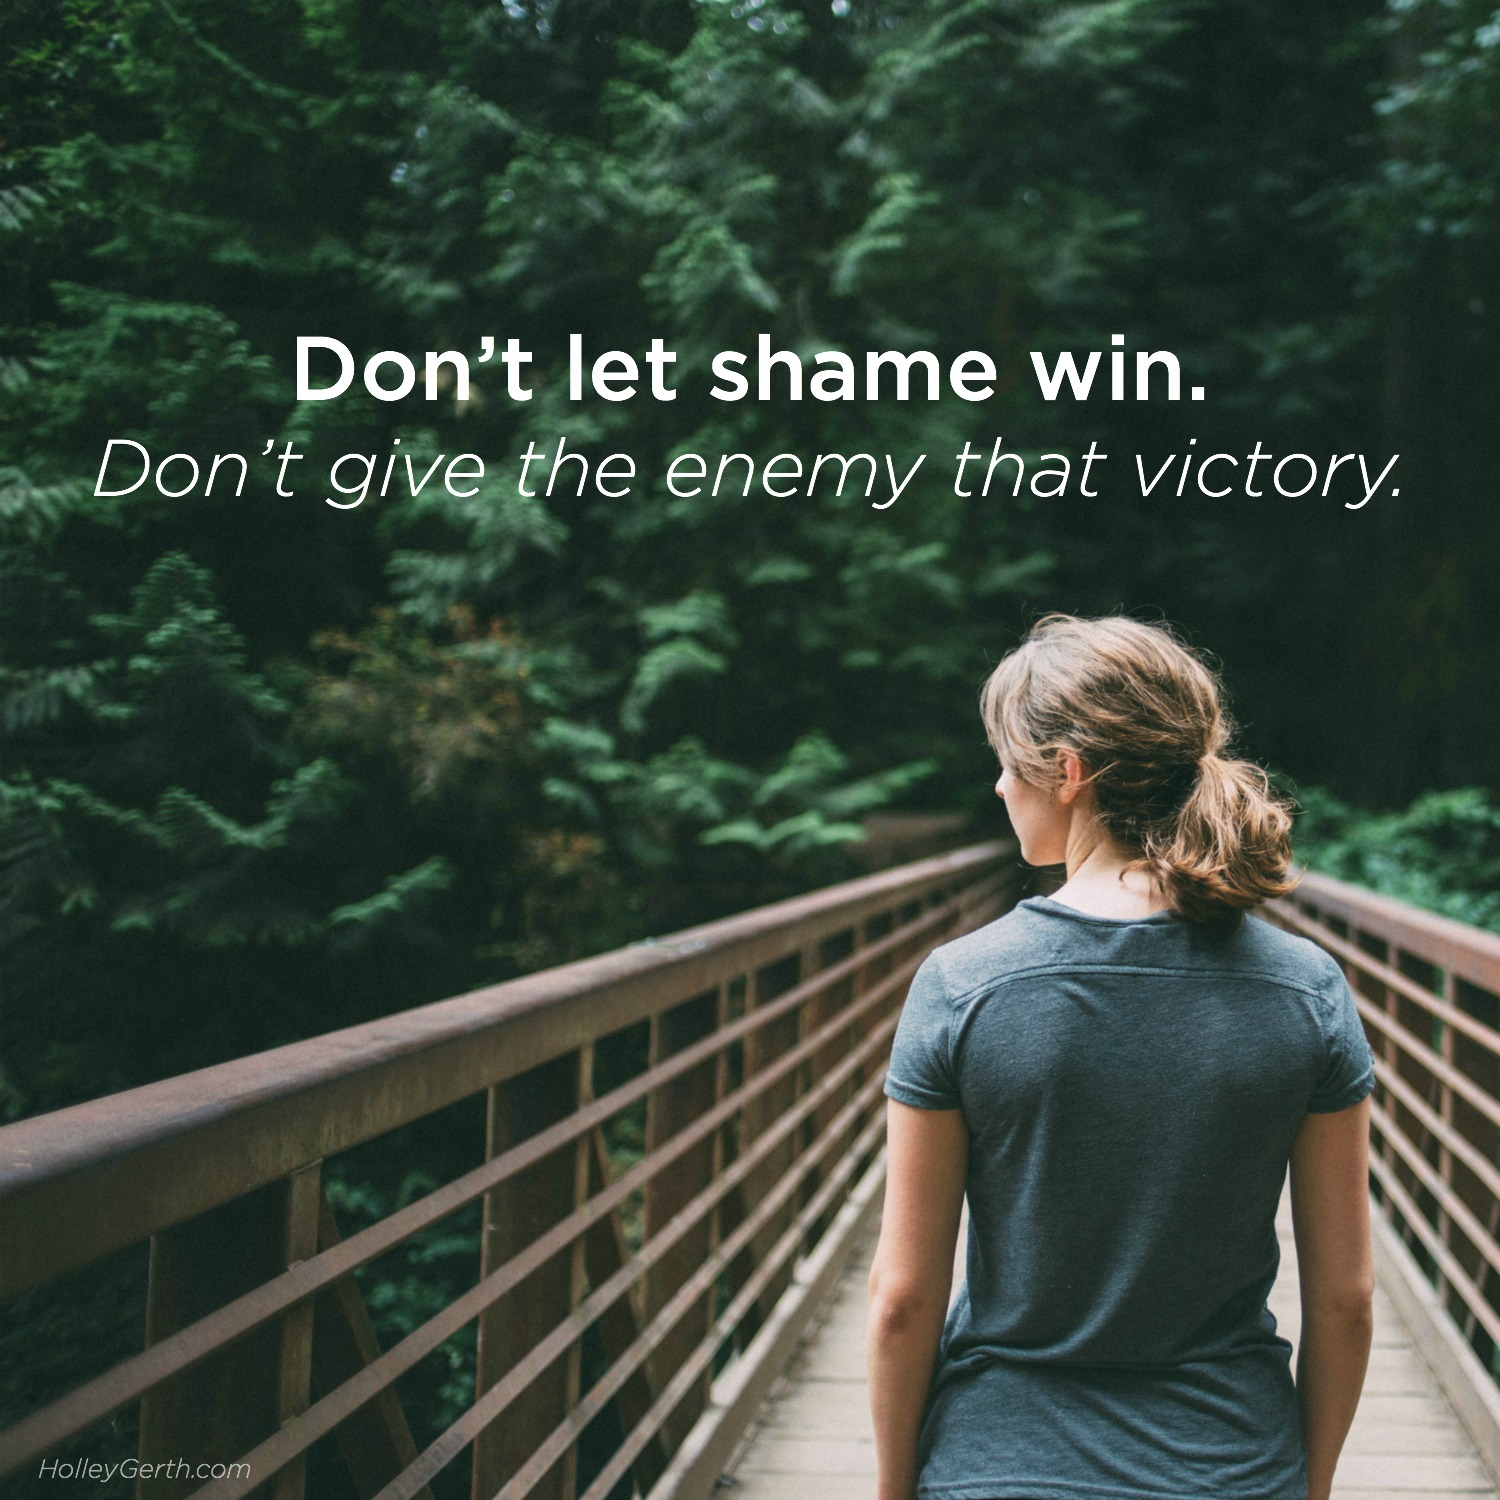 Don't let shame win. Don't give the enemy that victory.